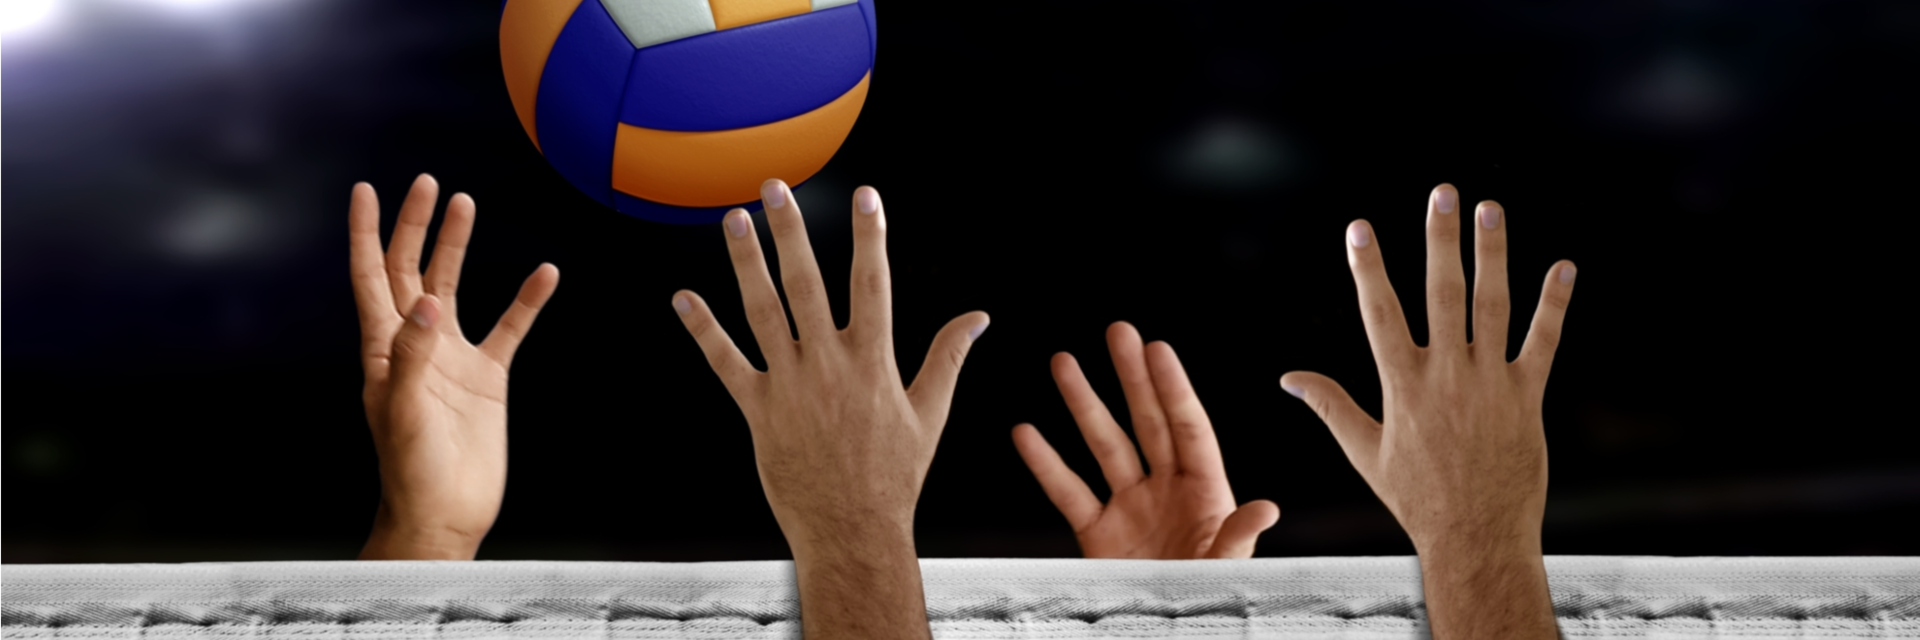 volleyball-injury-prevention-for-high-school-athletes